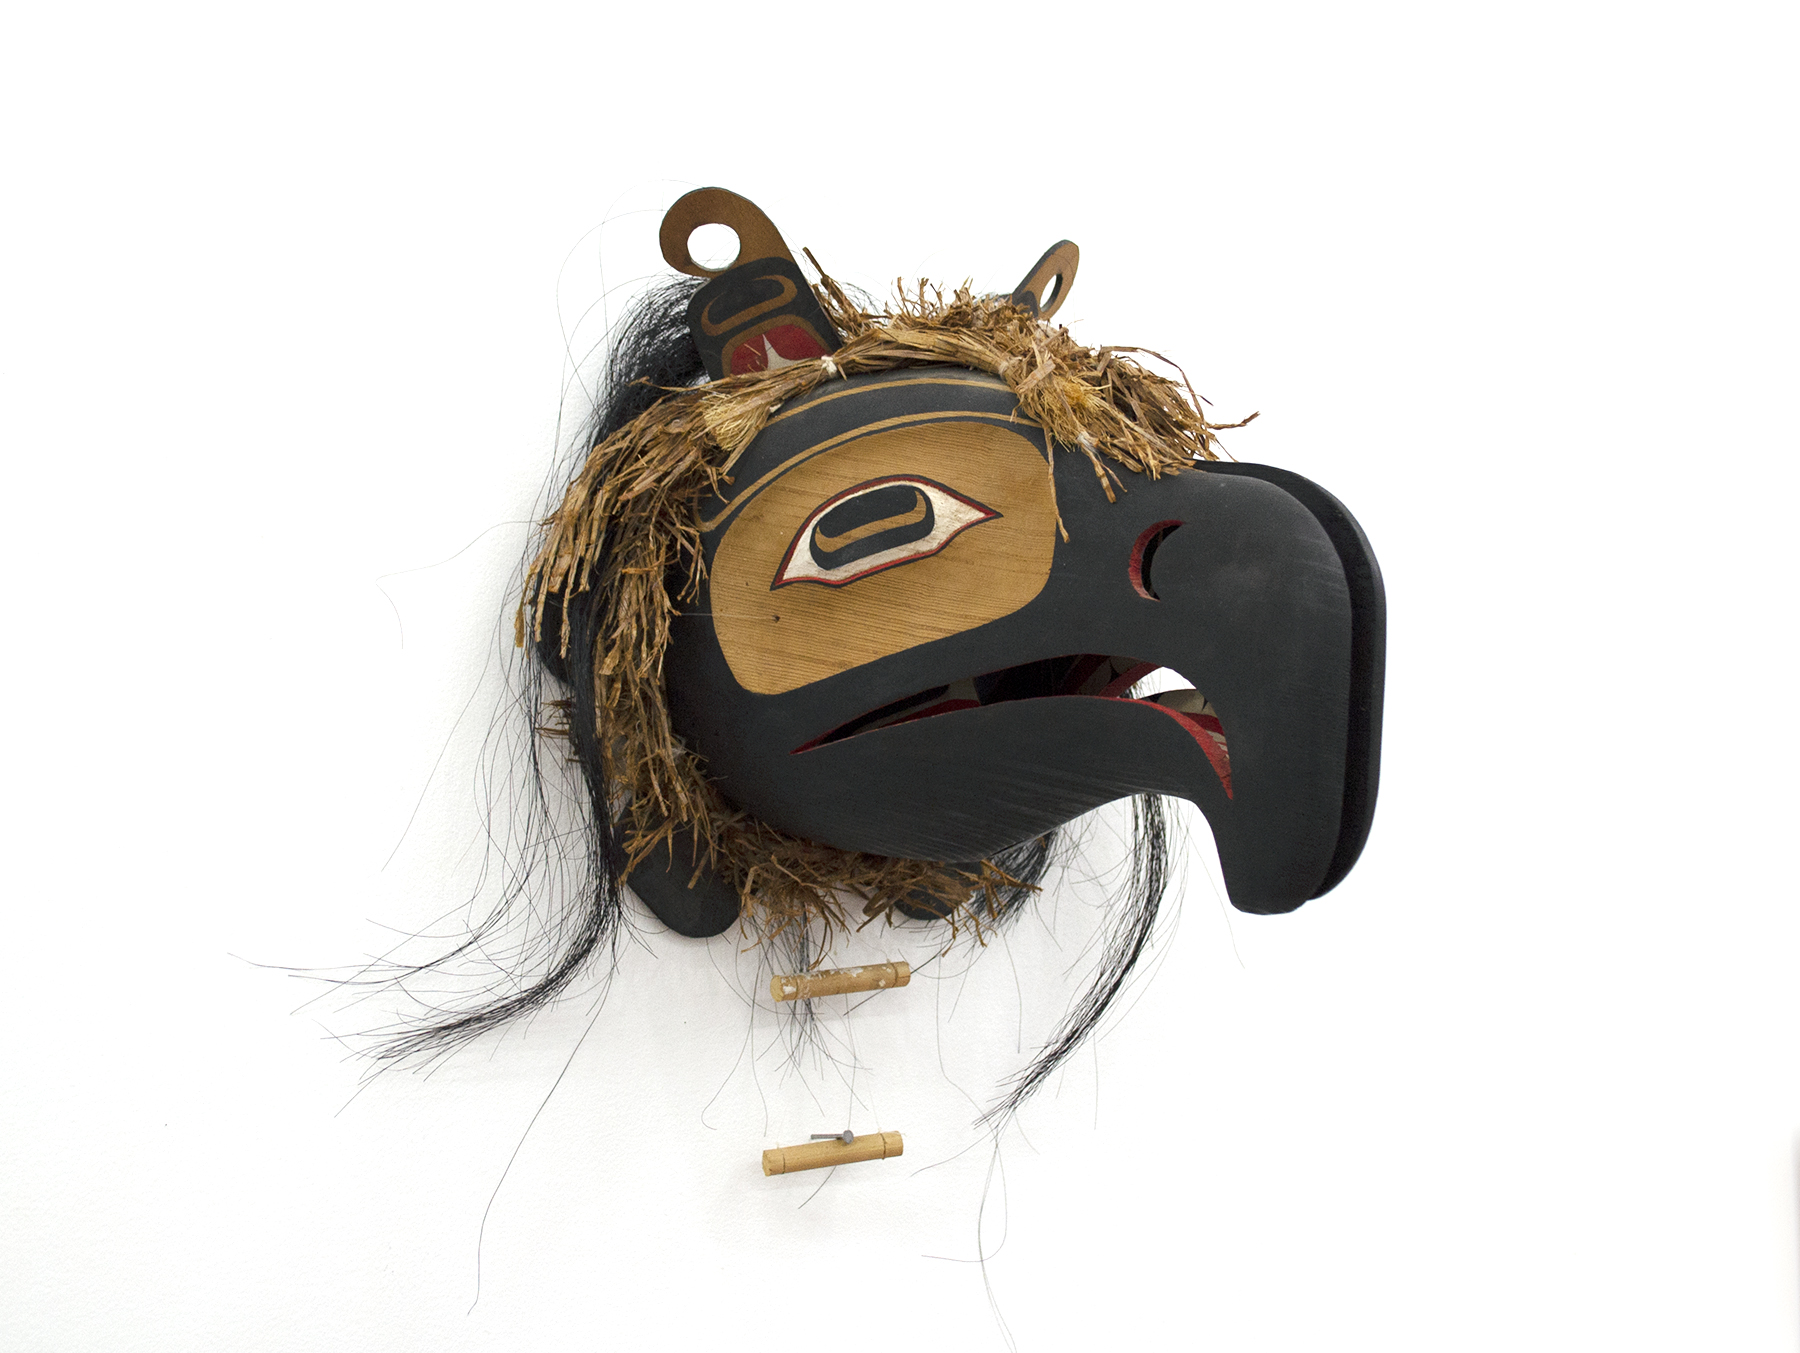 "Transformation Mask (closed), c. 1980, Beau Dick, Red cedar, acrylic, horsehair, fishing line, cedar bark, 11"" x 10"" x 11.5"" (closed); 11"" x 14"" x 15. 5"" (open), SOLD"